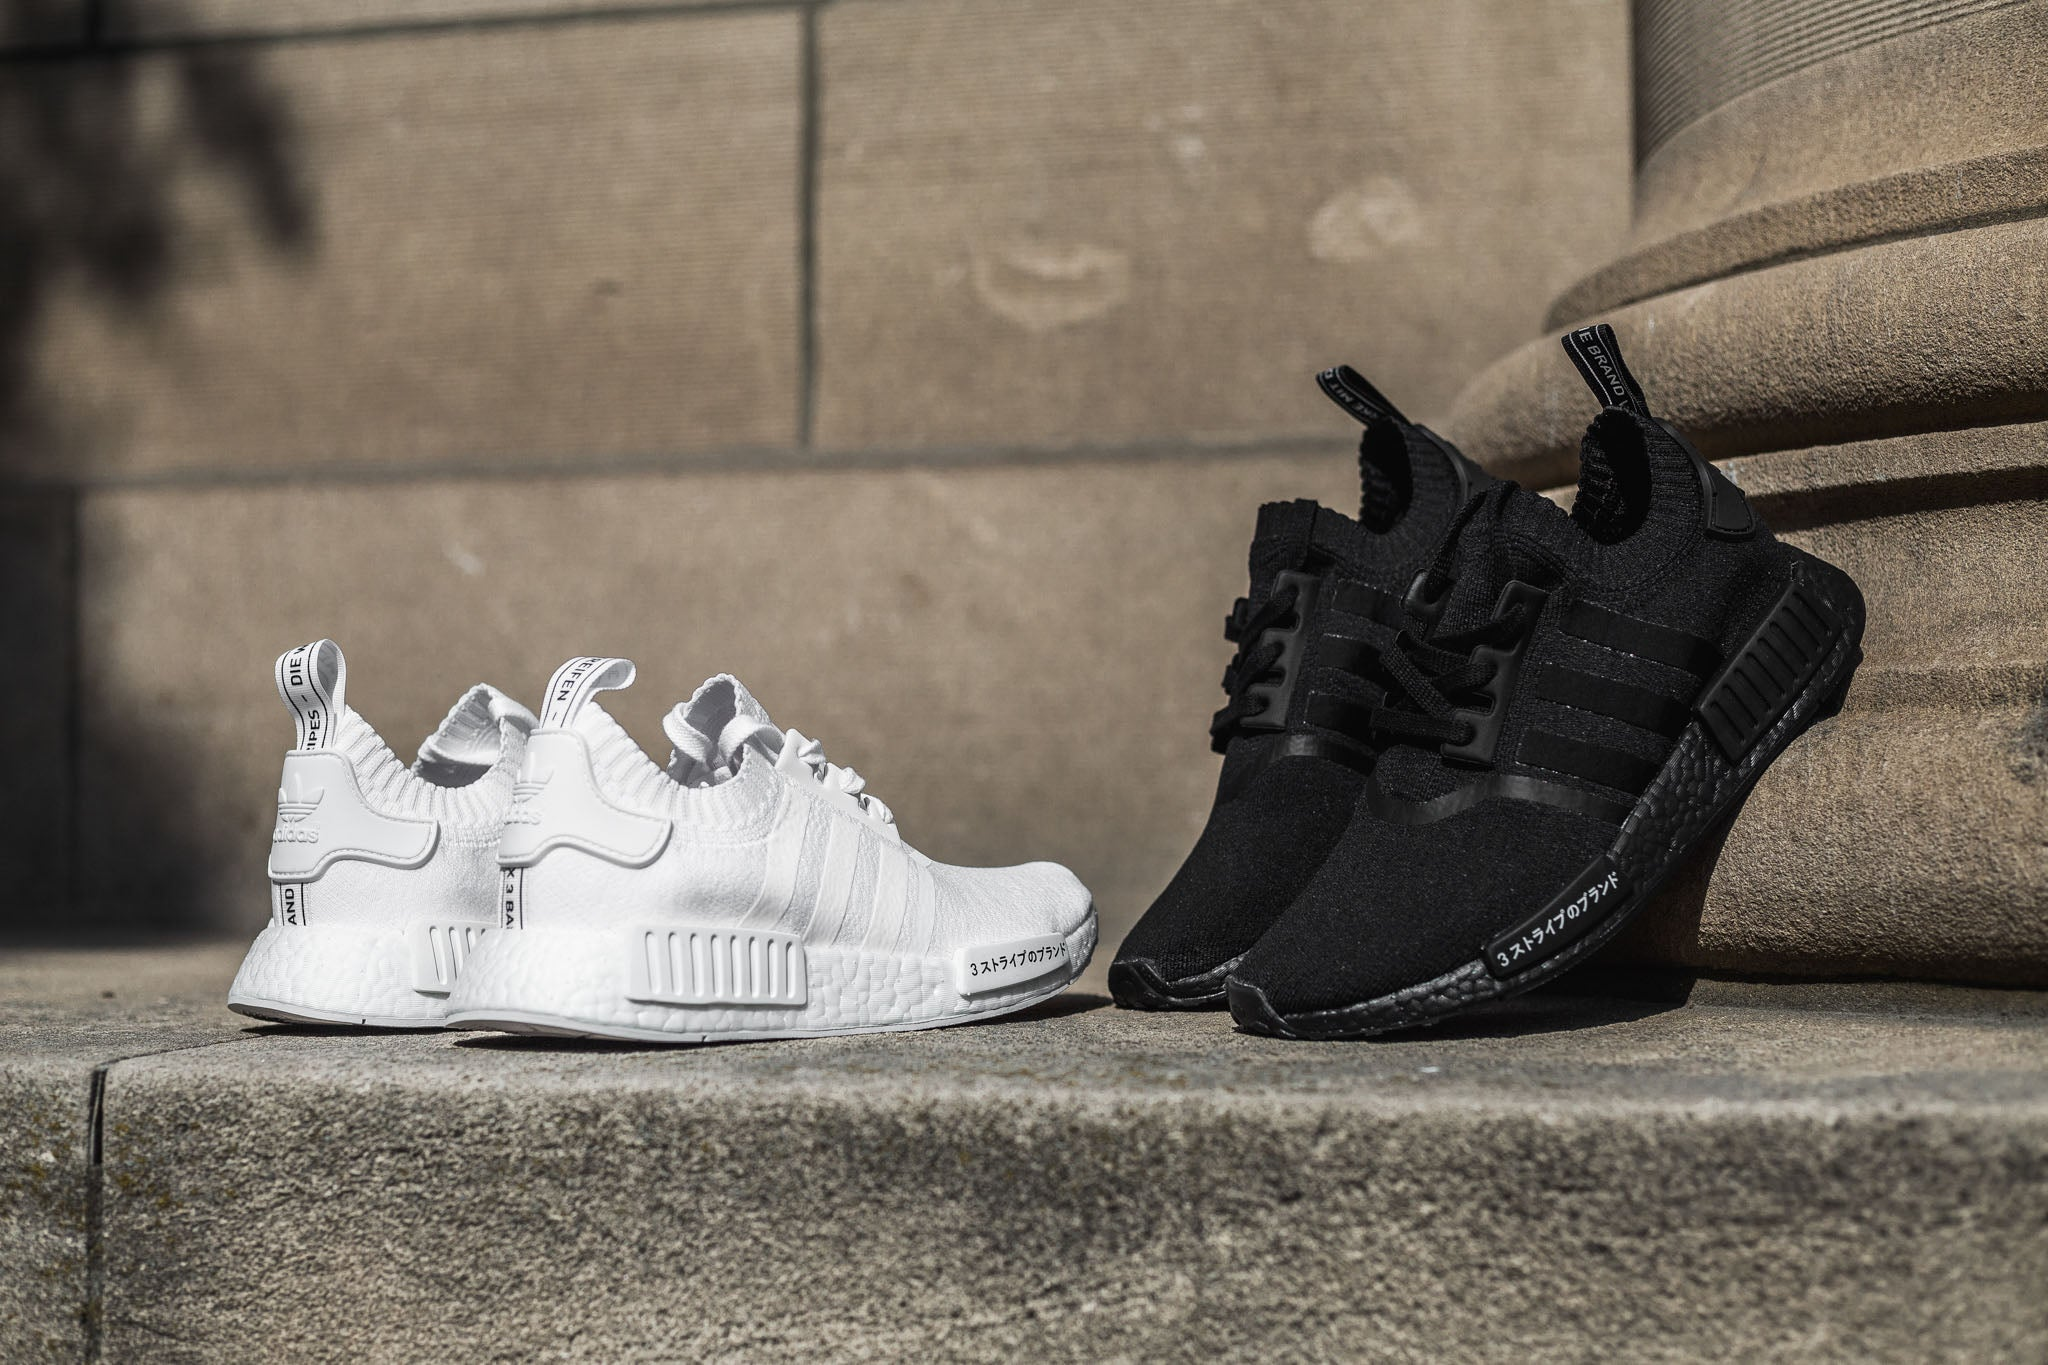 adidas NMD R1 Japan Collection Launching Online 08.11.17 0